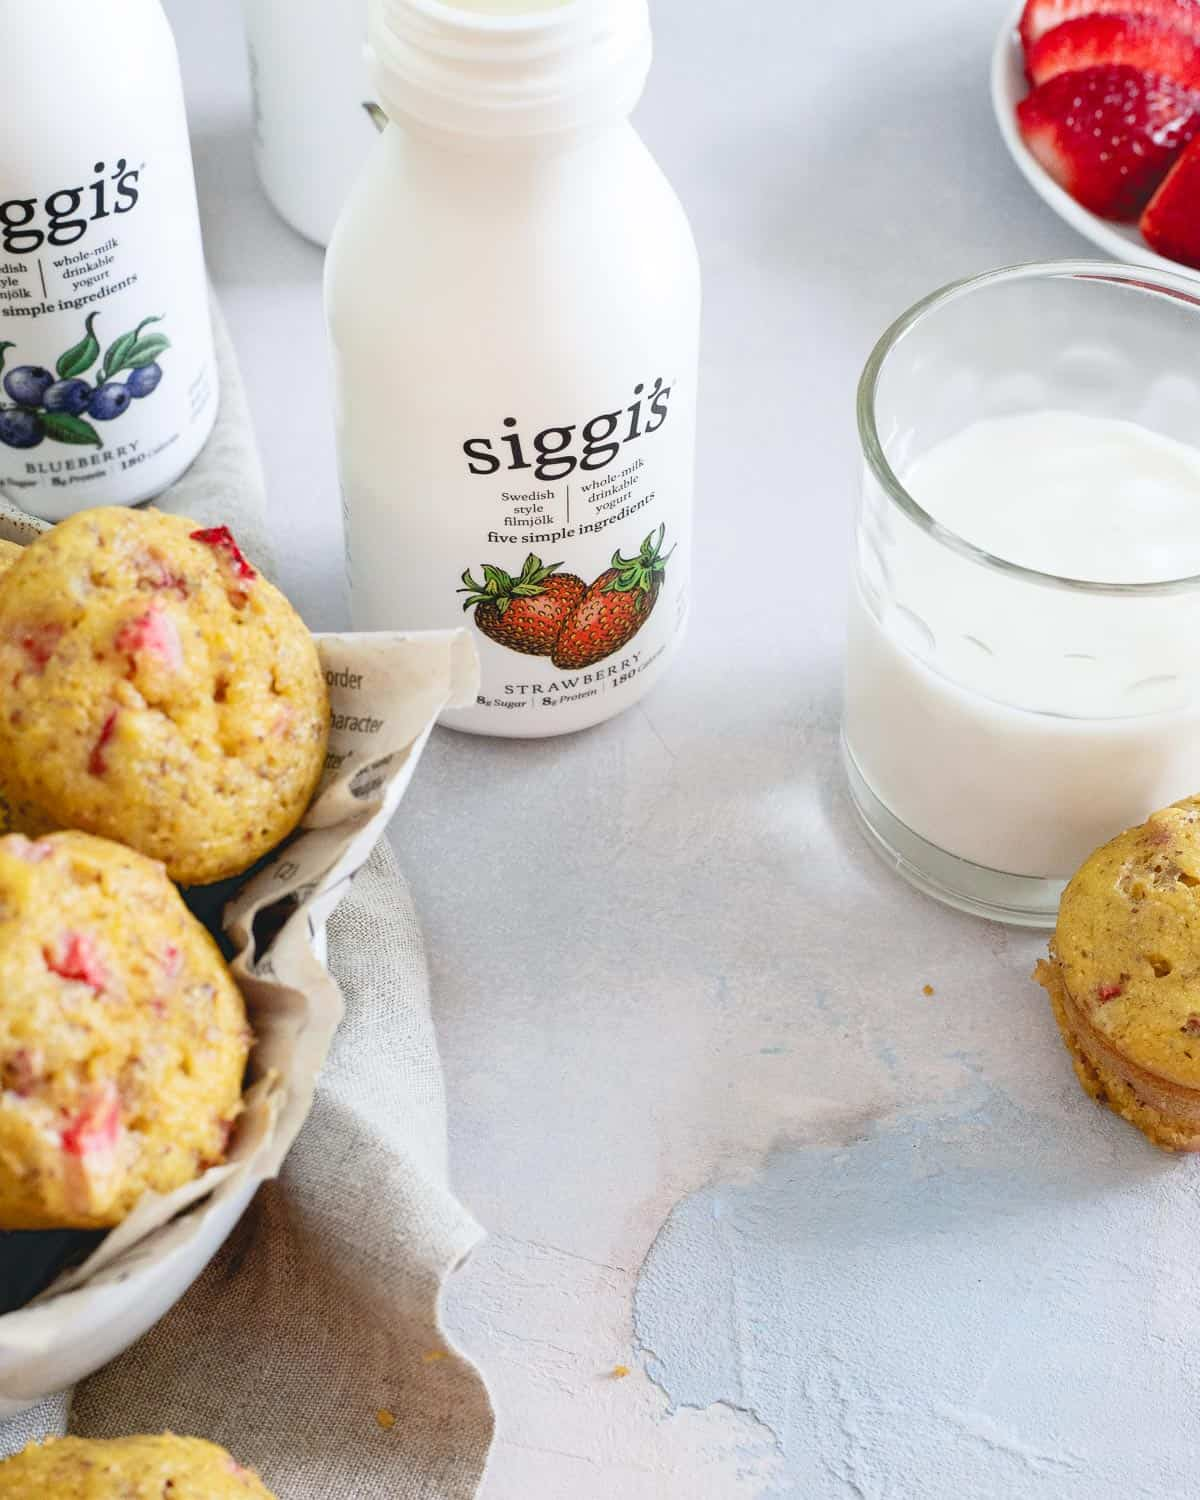 When you need a healthy breakfast on the go and have little time to prep, these siggi's whole milk drinkable yogurt varieties are a great option!